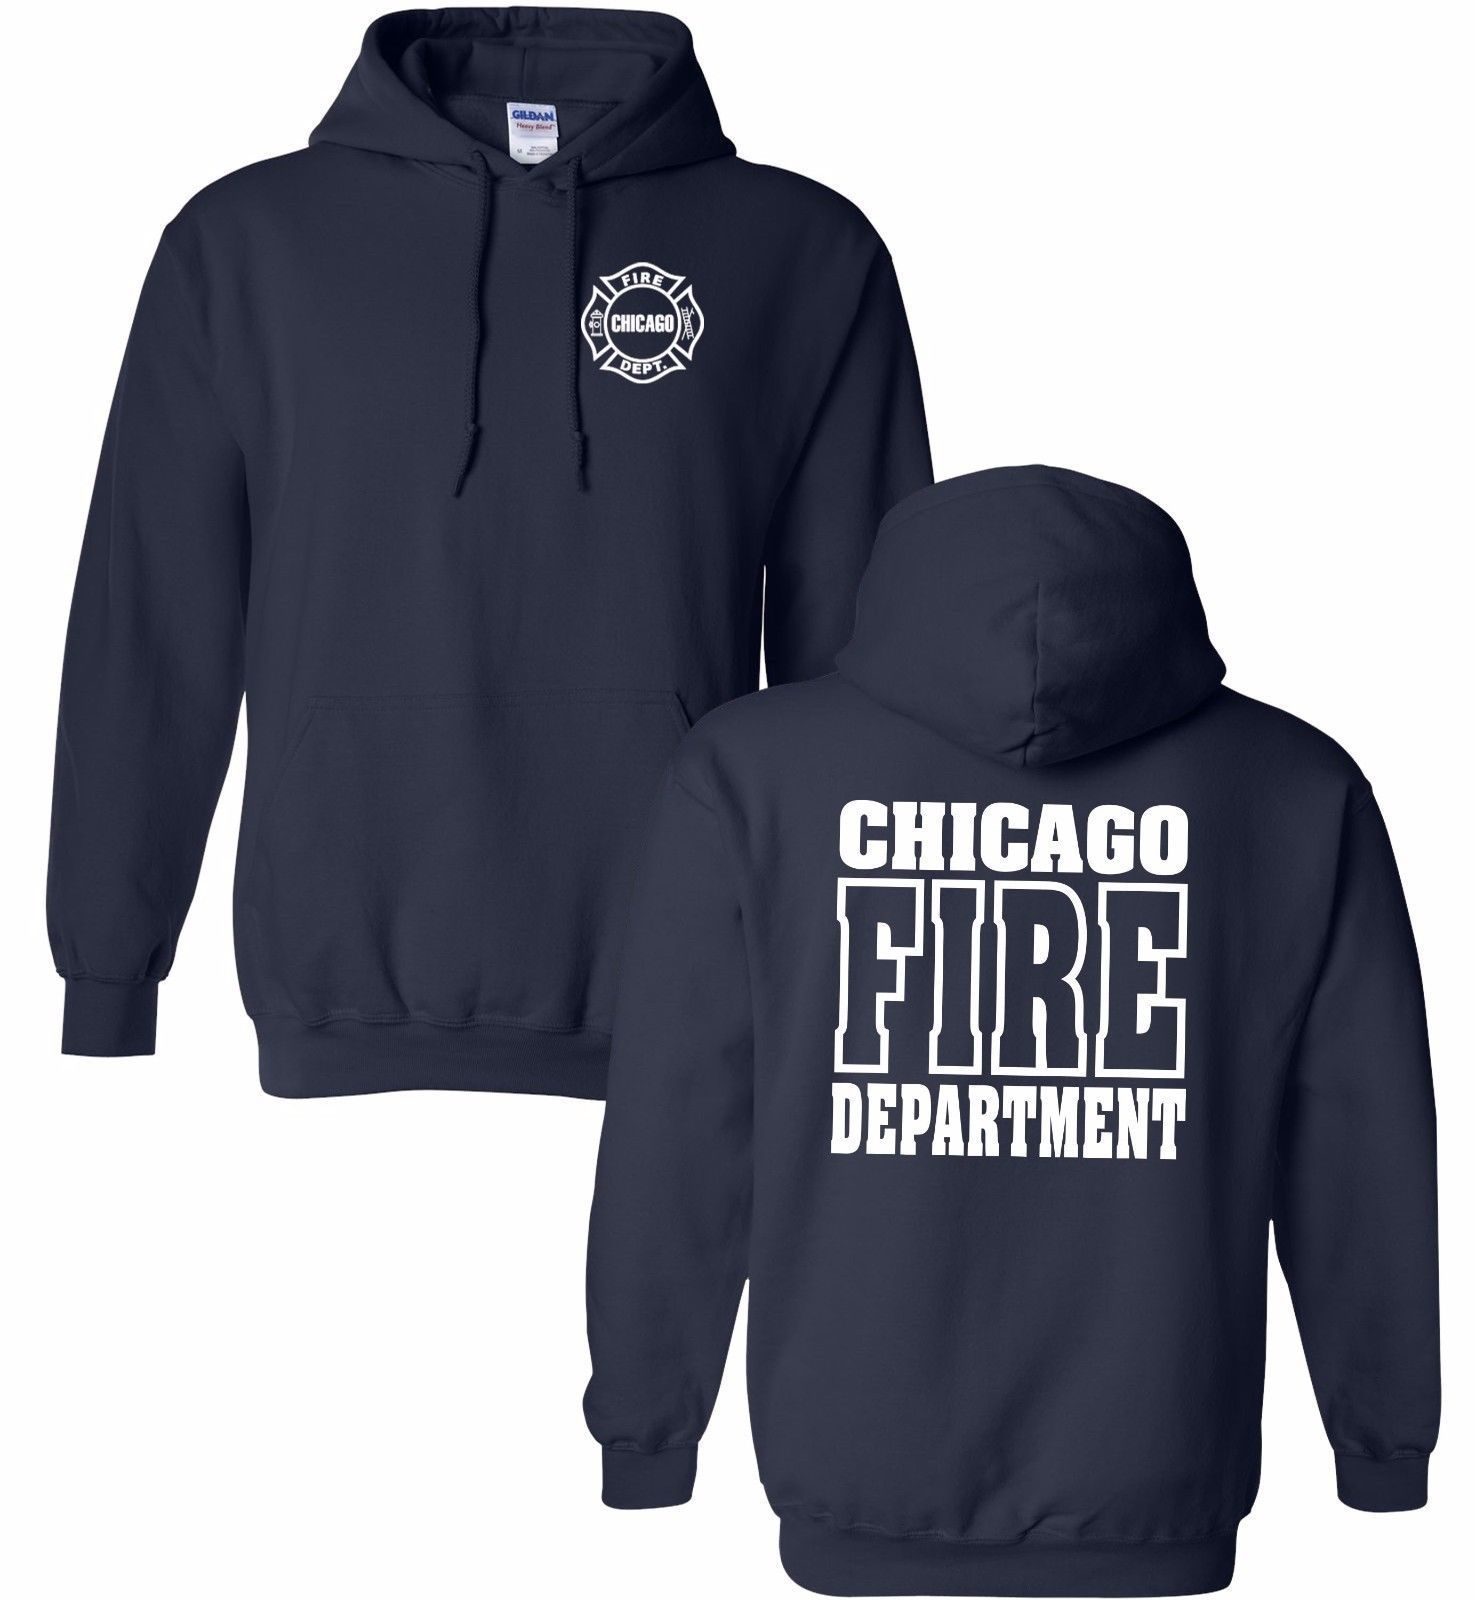 Chicago Fire Department 2-Sided Pullover Job Hoodie 10930 Small